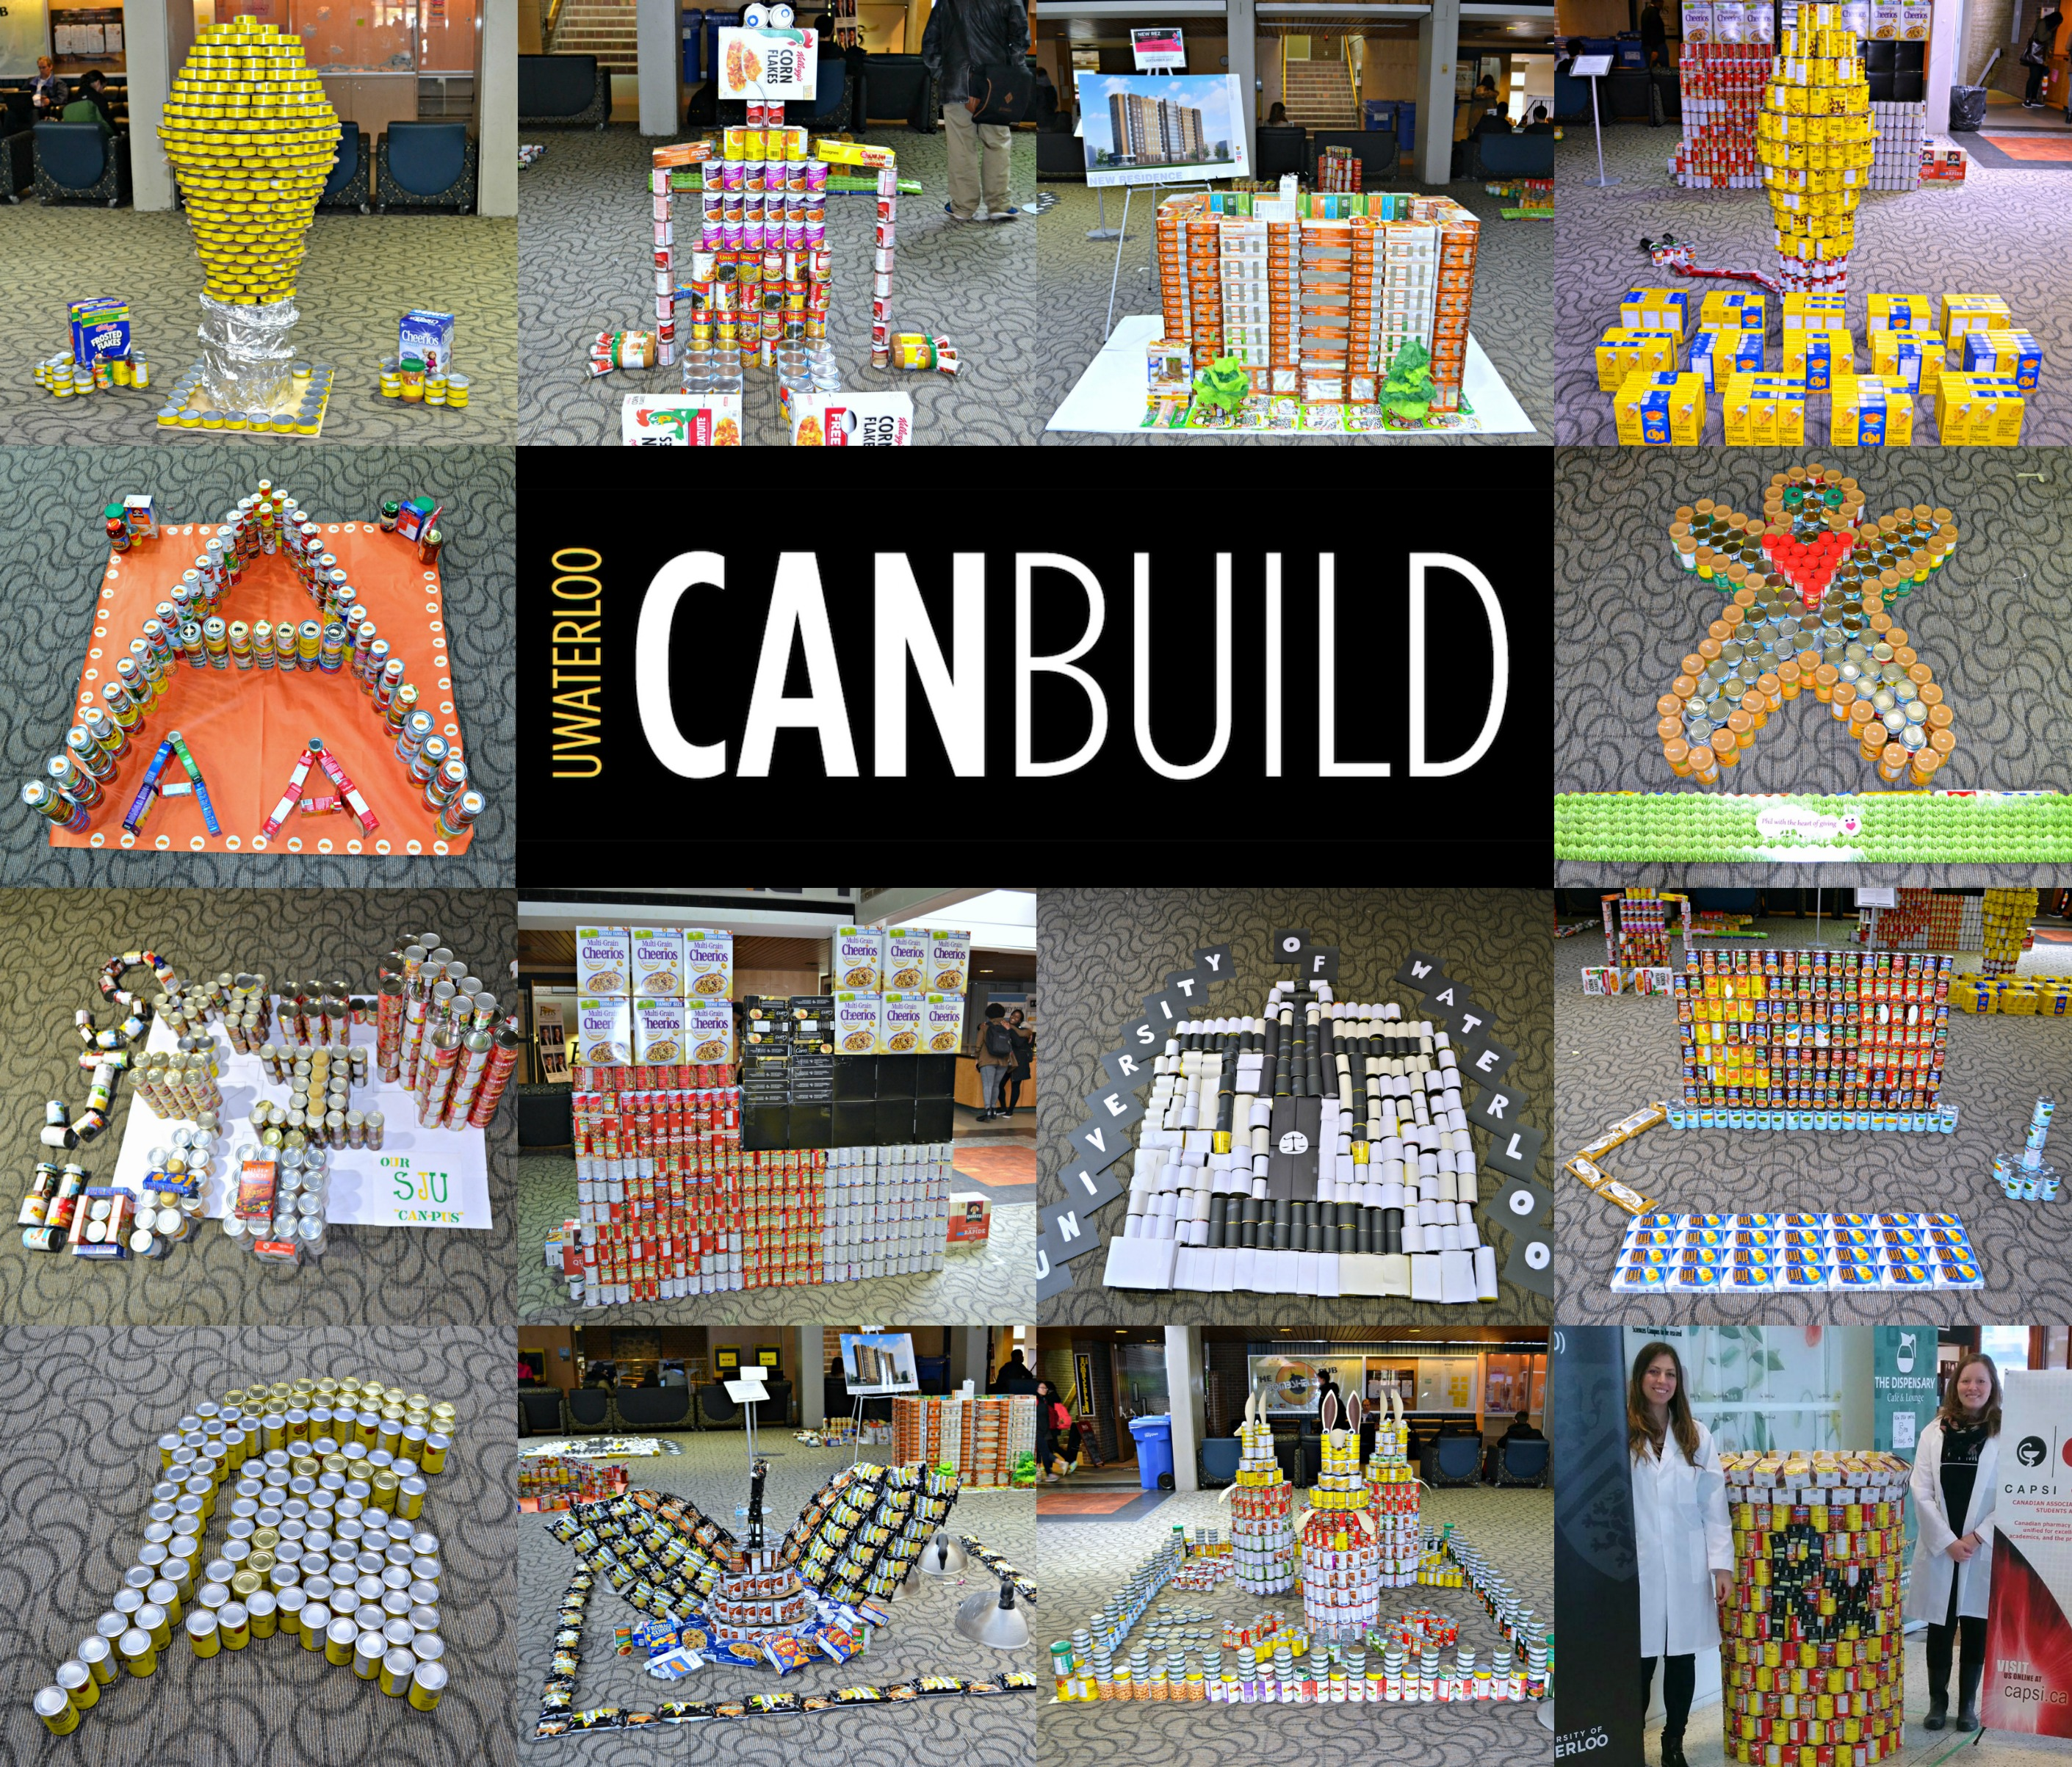 UWaterloo CanBuild, featuring a collage of different canned structures